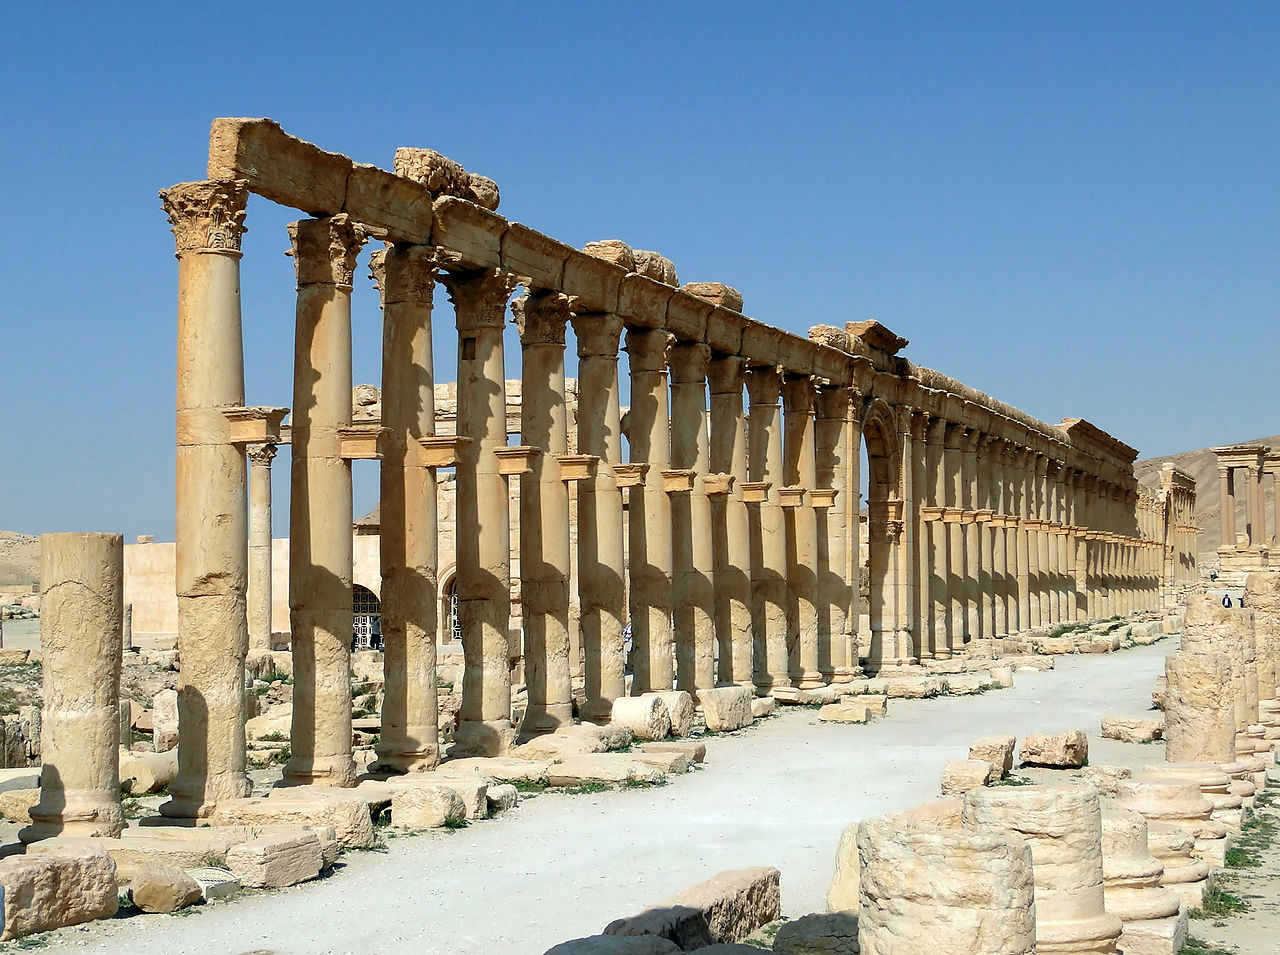 The Decumanus Maximus at the ancient site of Palmyra in the Syrian desert, which has been extensively looted. (photo by Bernard Gagnon via Wikimedia Commons)